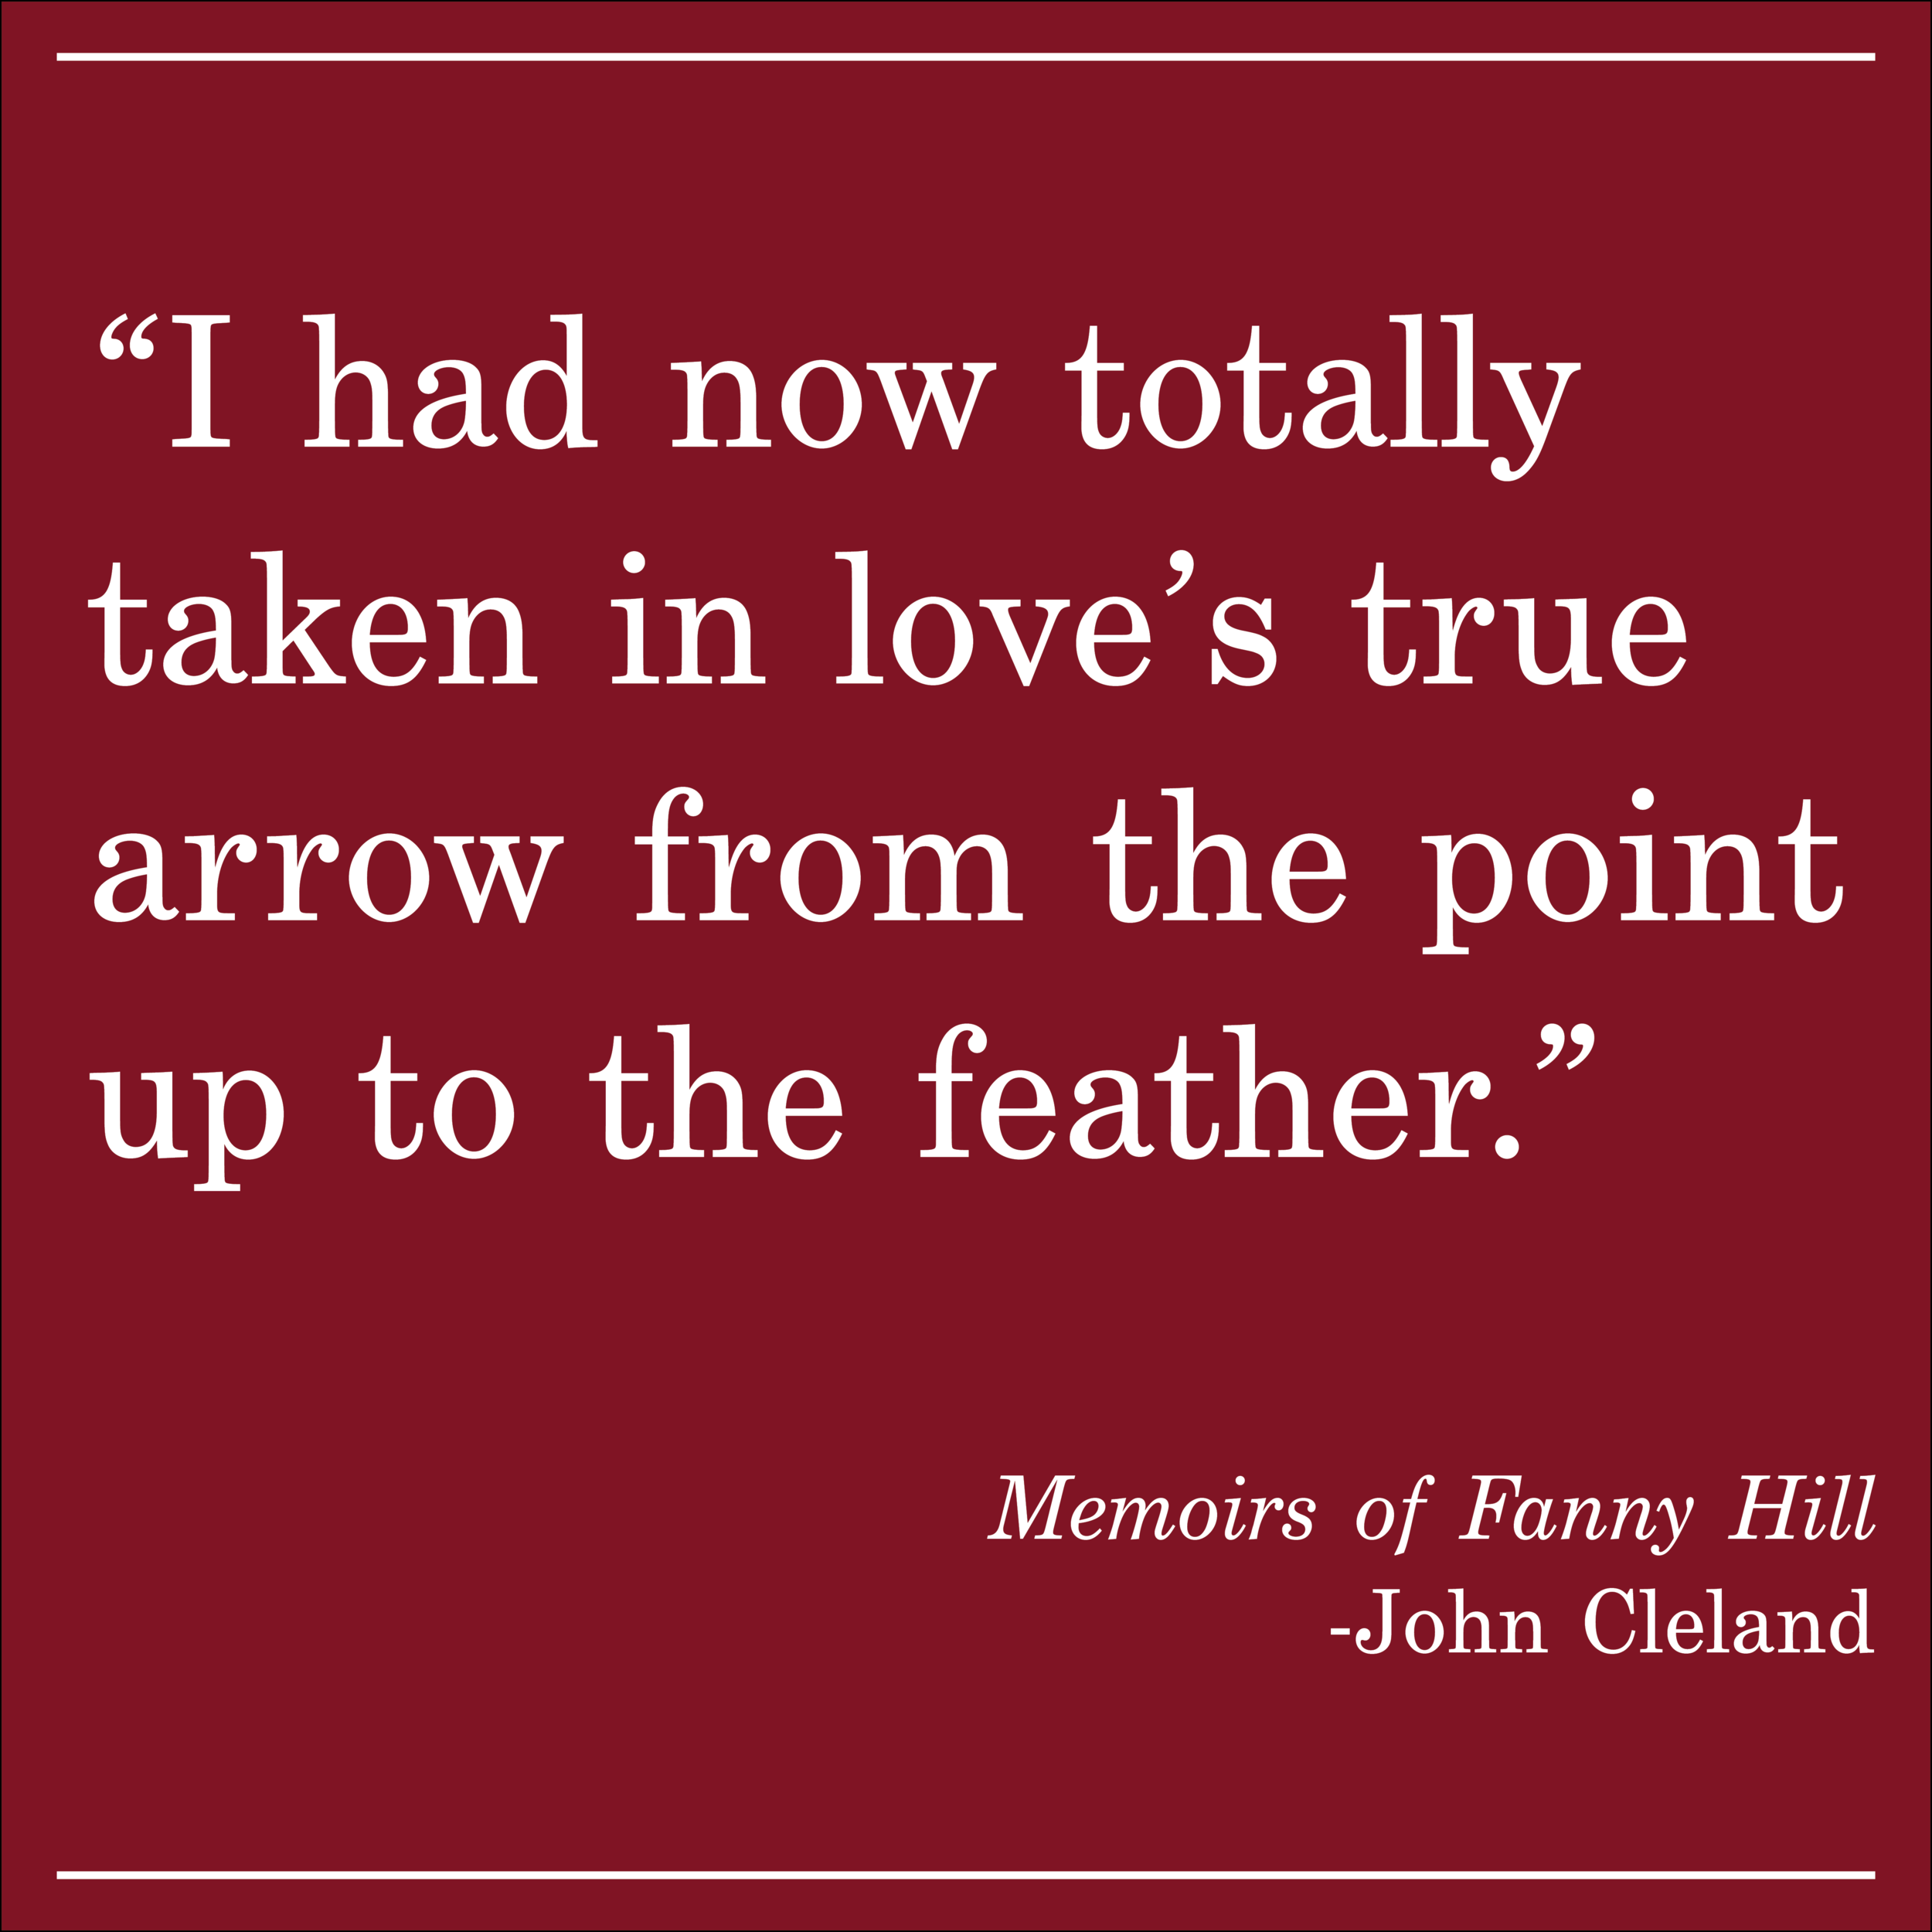 Daily Quote John Cleland Memoirs of Fanny Hill